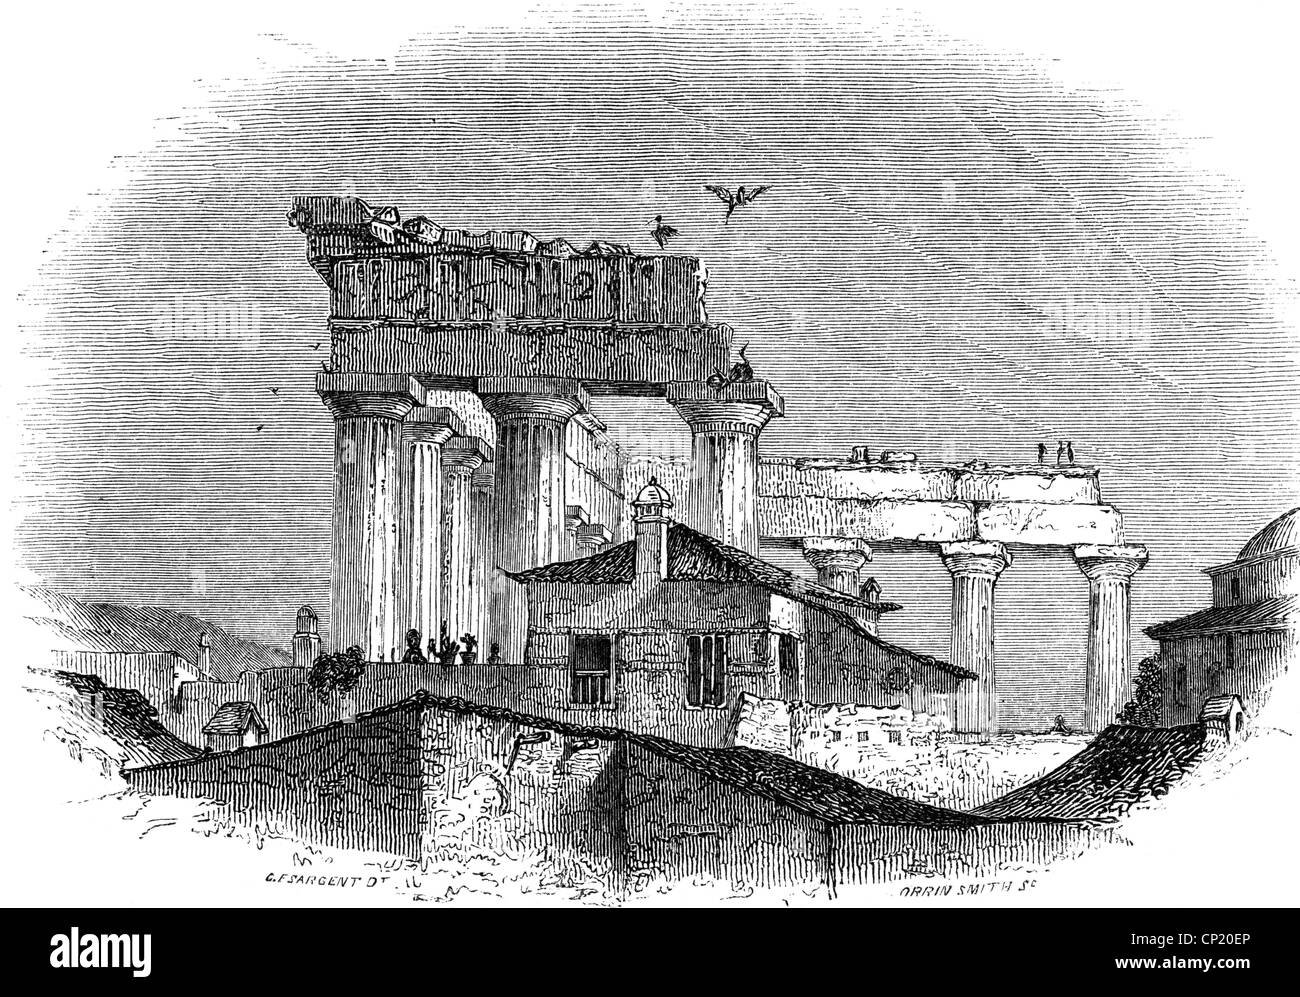 Parthenon Drawing Stock Photos Amp Parthenon Drawing Stock